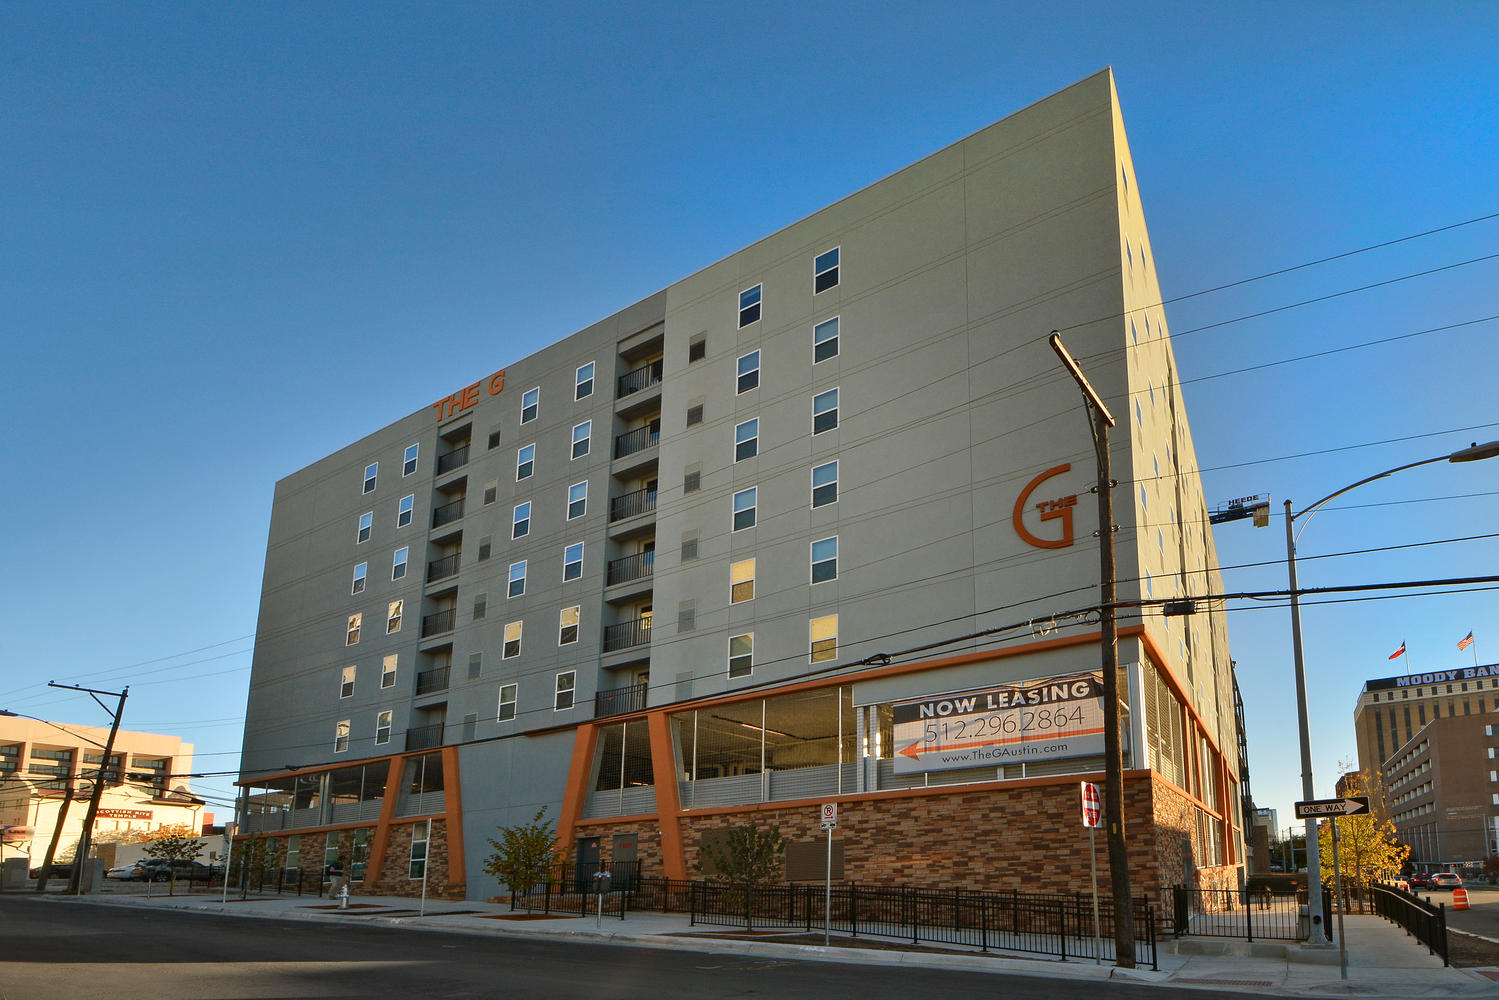 The G in UT South Campus